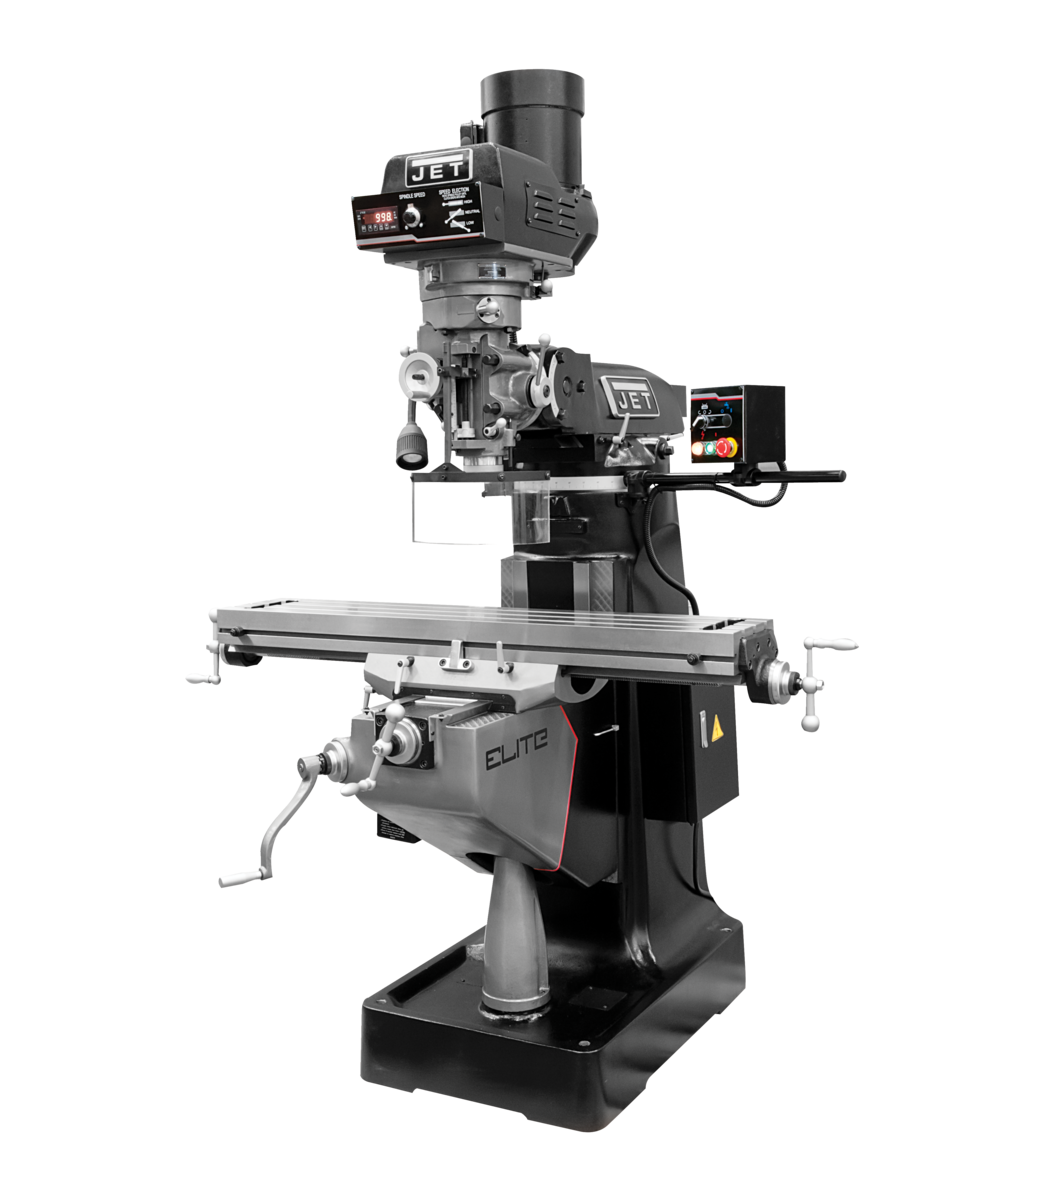 EVS-949 Mill with 3-Axis Newall DP700 (Knee) DRO and Servo X, Y-Axis Powerfeeds and USA Air Powered Draw Bar